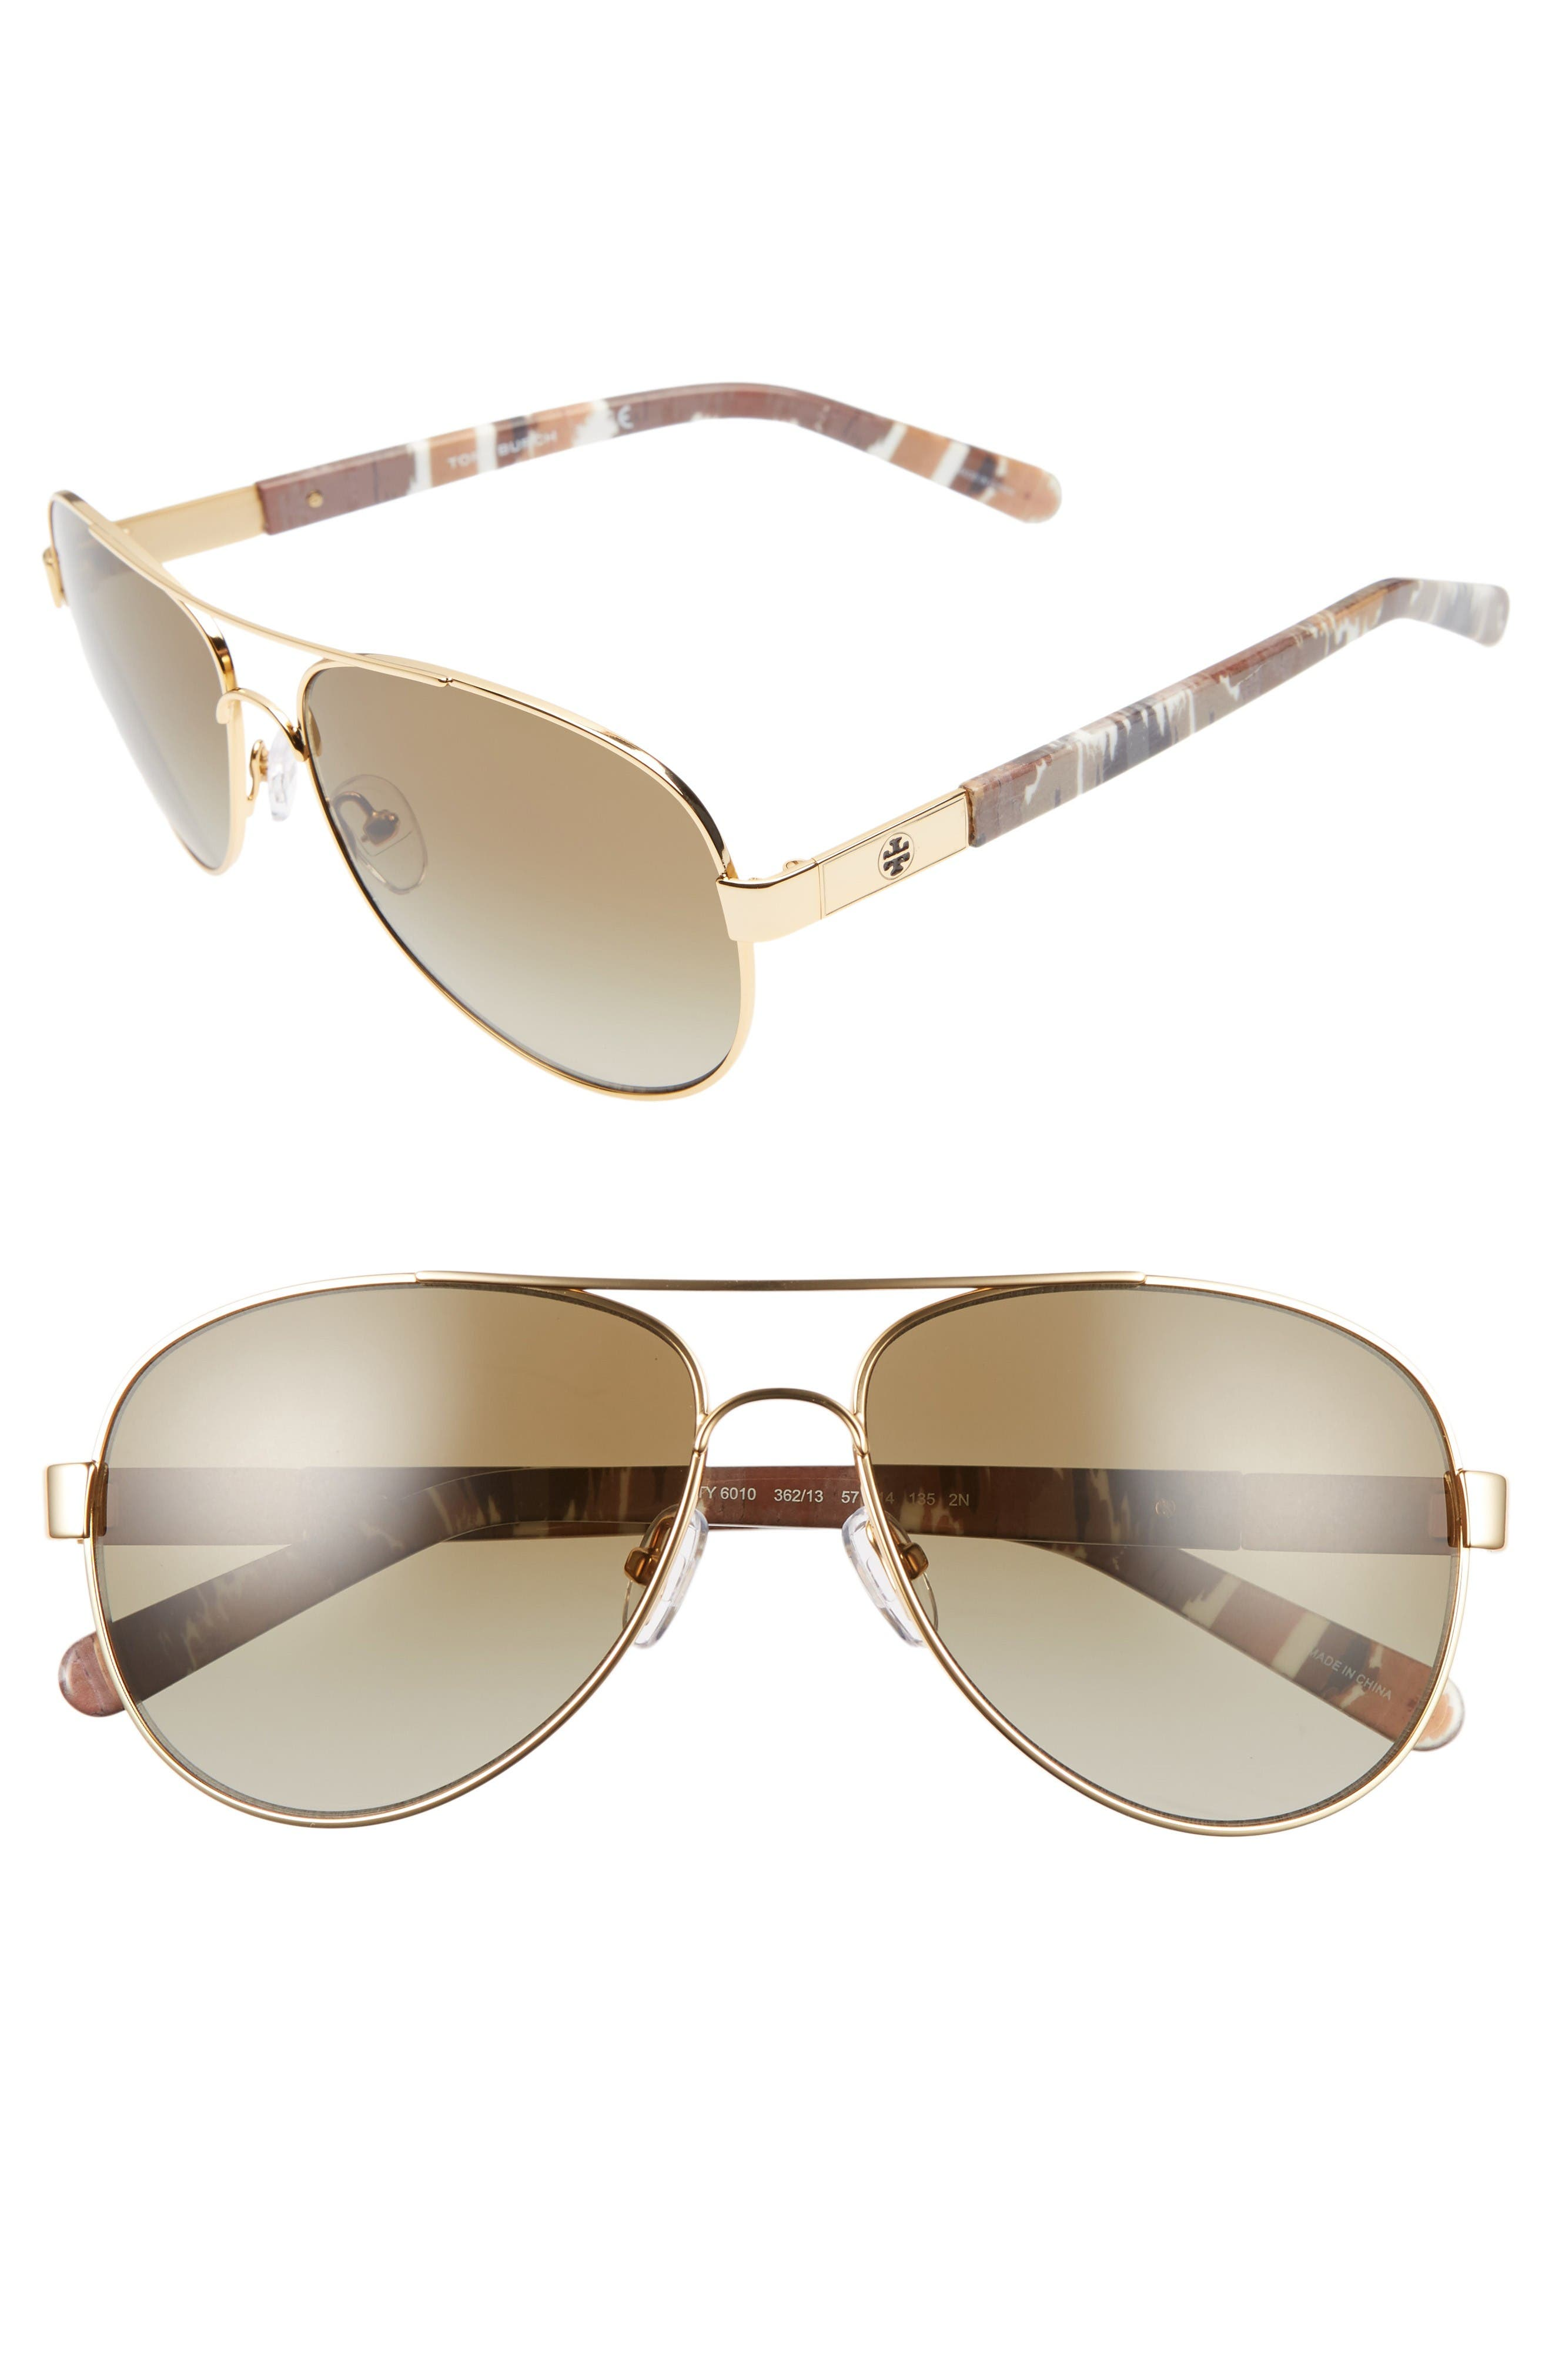 Alternate Image 1 Selected - Tory Burch 57mm Aviator Sunglasses